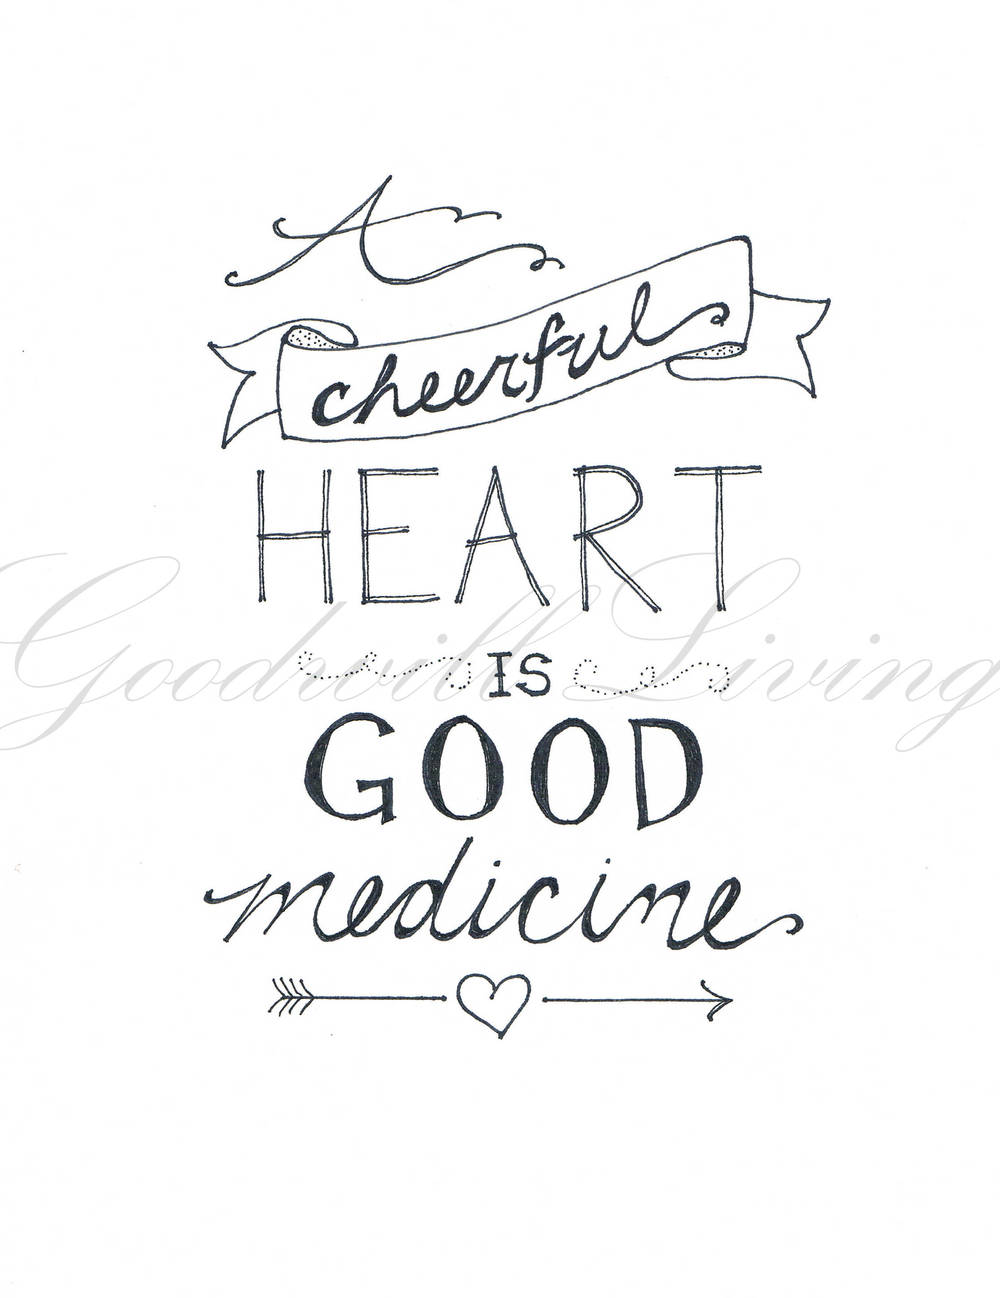 Cheerful Heart-001.jpg